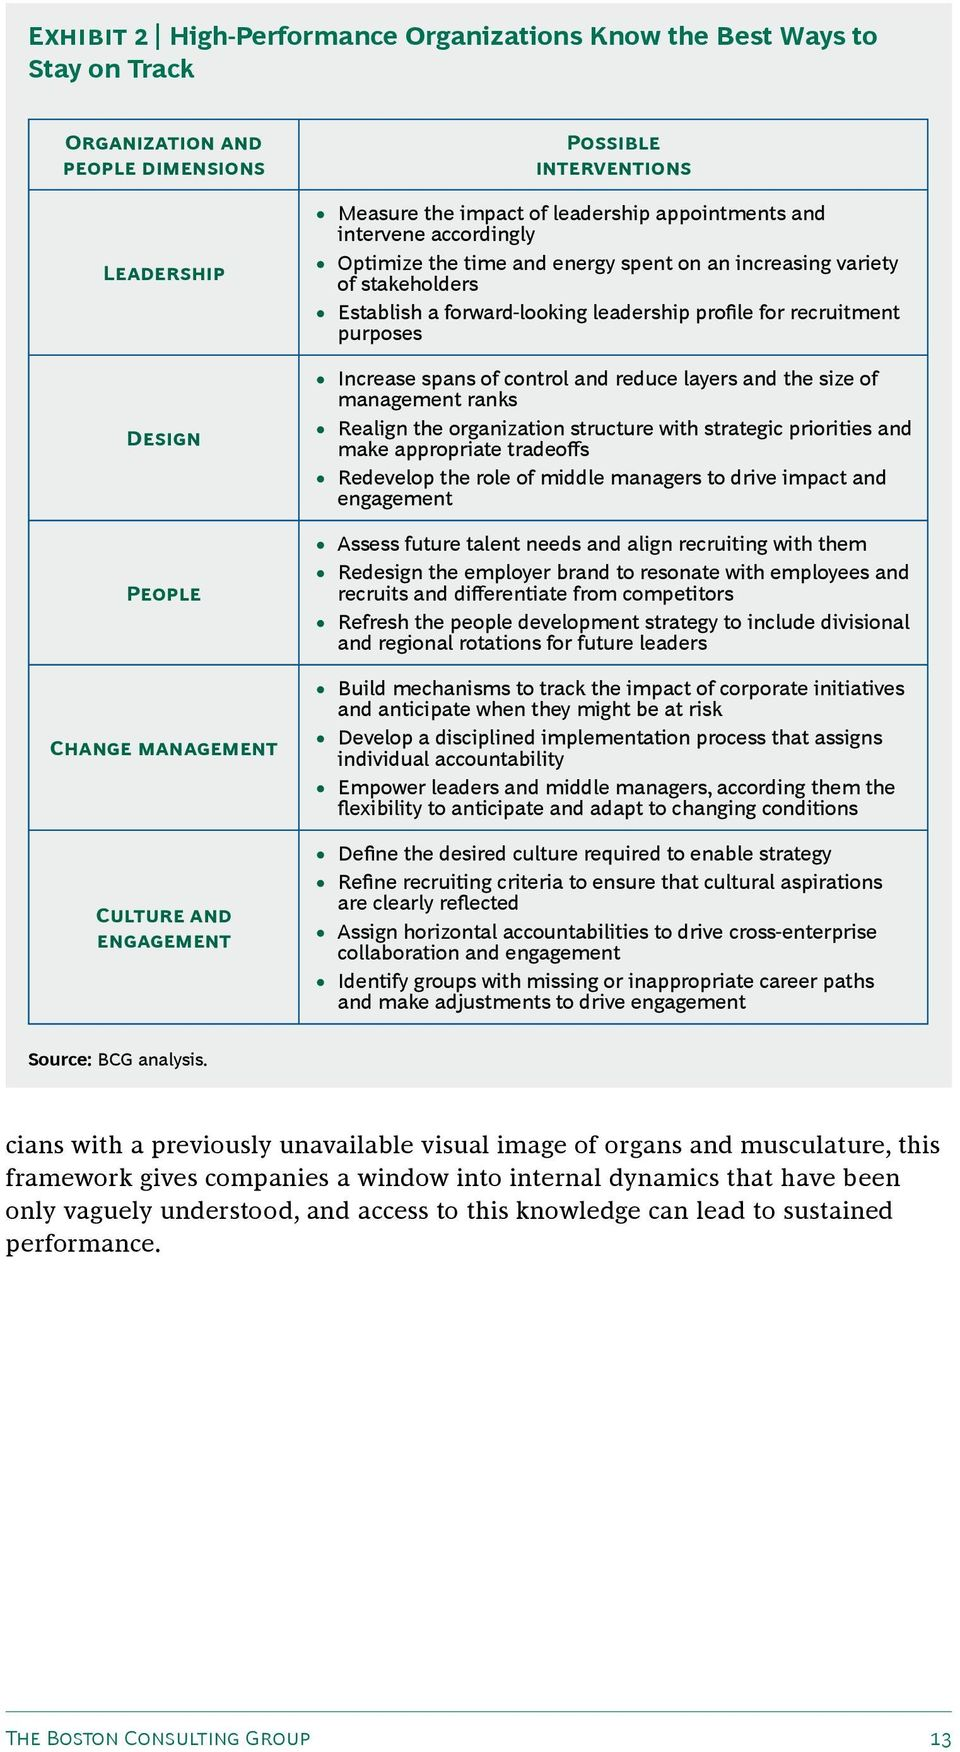 control and reduce layers and the size of management ranks Realign the organization structure with strategic priorities and make appropriate tradeoffs Redevelop the role of middle managers to drive